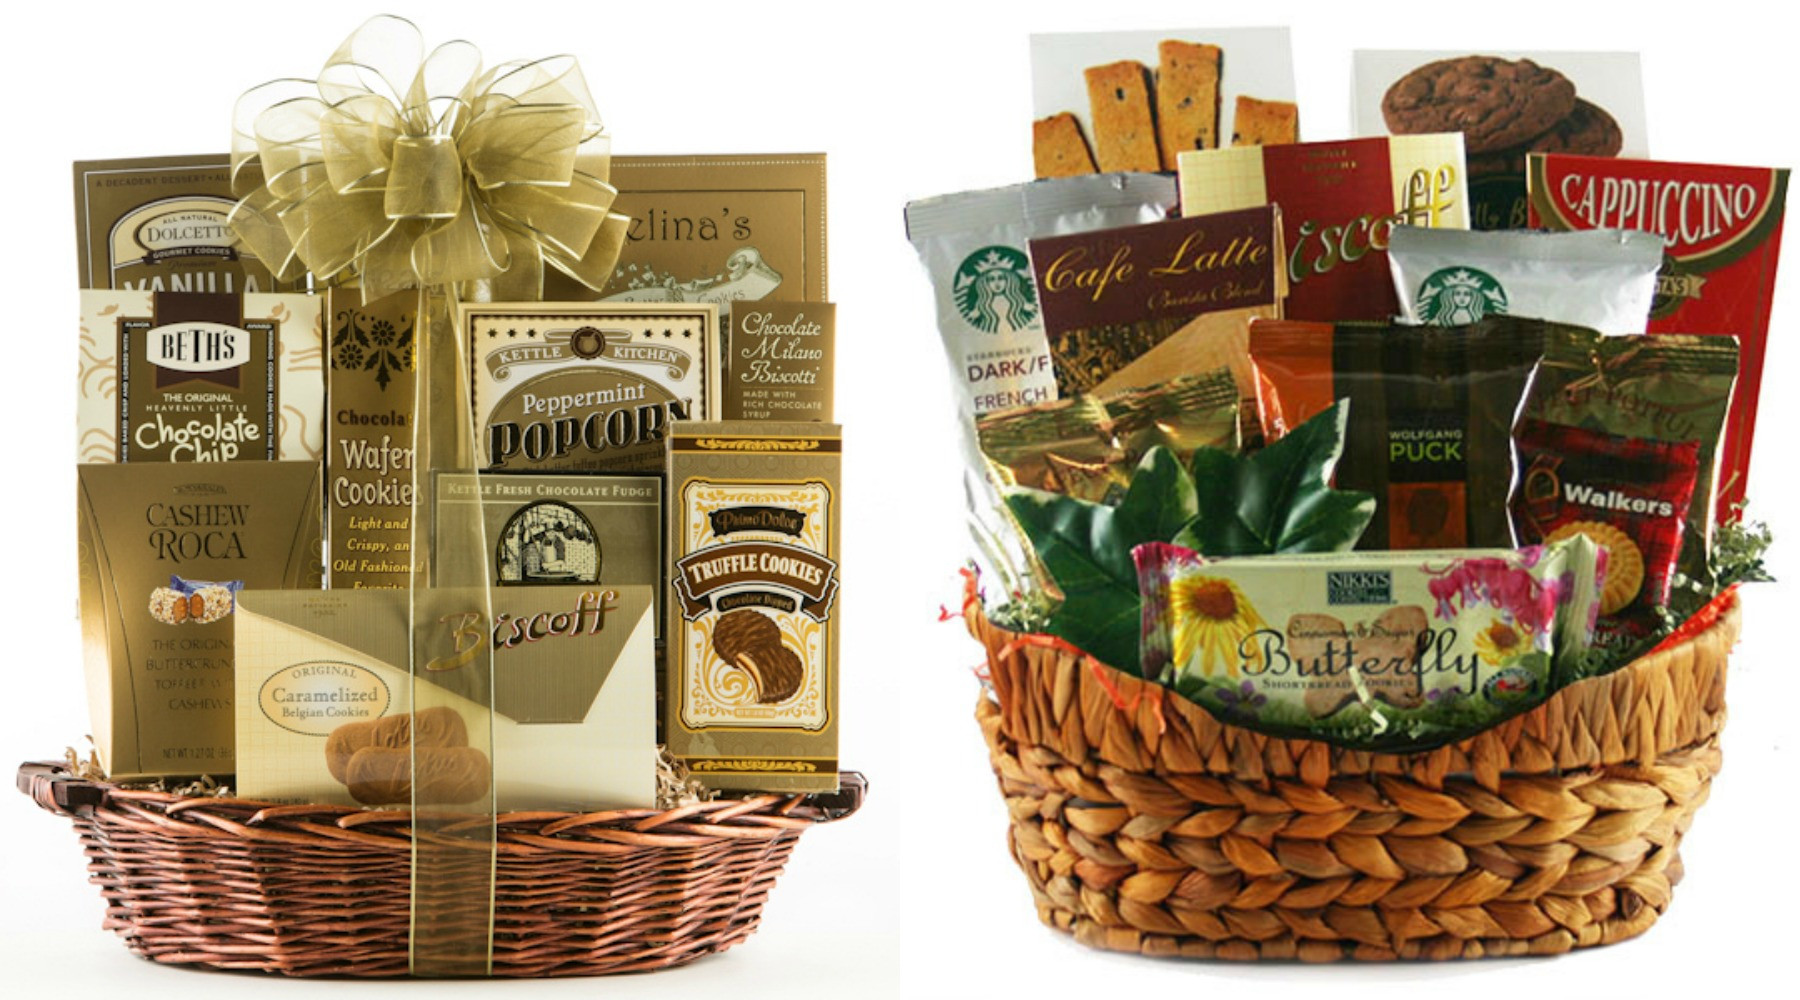 Christmas Food Gifts Baskets  Corporate Christmas Gift Etiquette – AA Gifts & Baskets